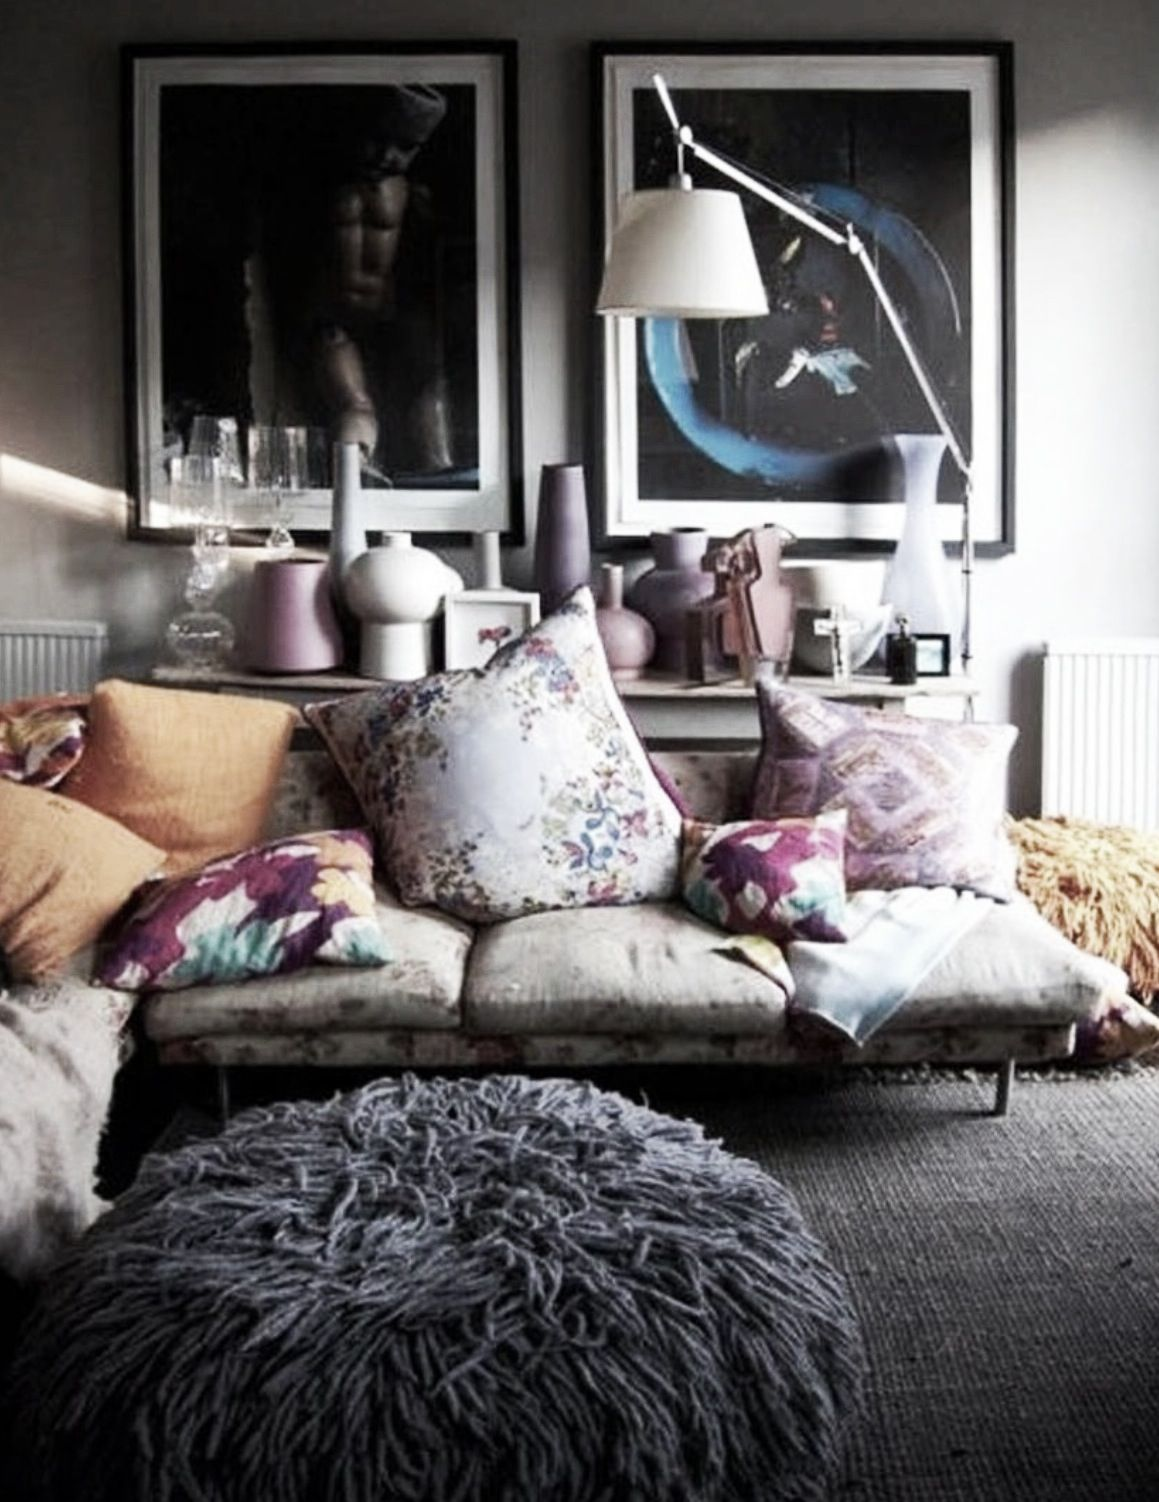 Boho Decor Bliss ⍕⋼ Bright Gypsy Color Hippie Bohemian Mixed Pattern Home Decorating  Ideas   Living Room With Many Pillows